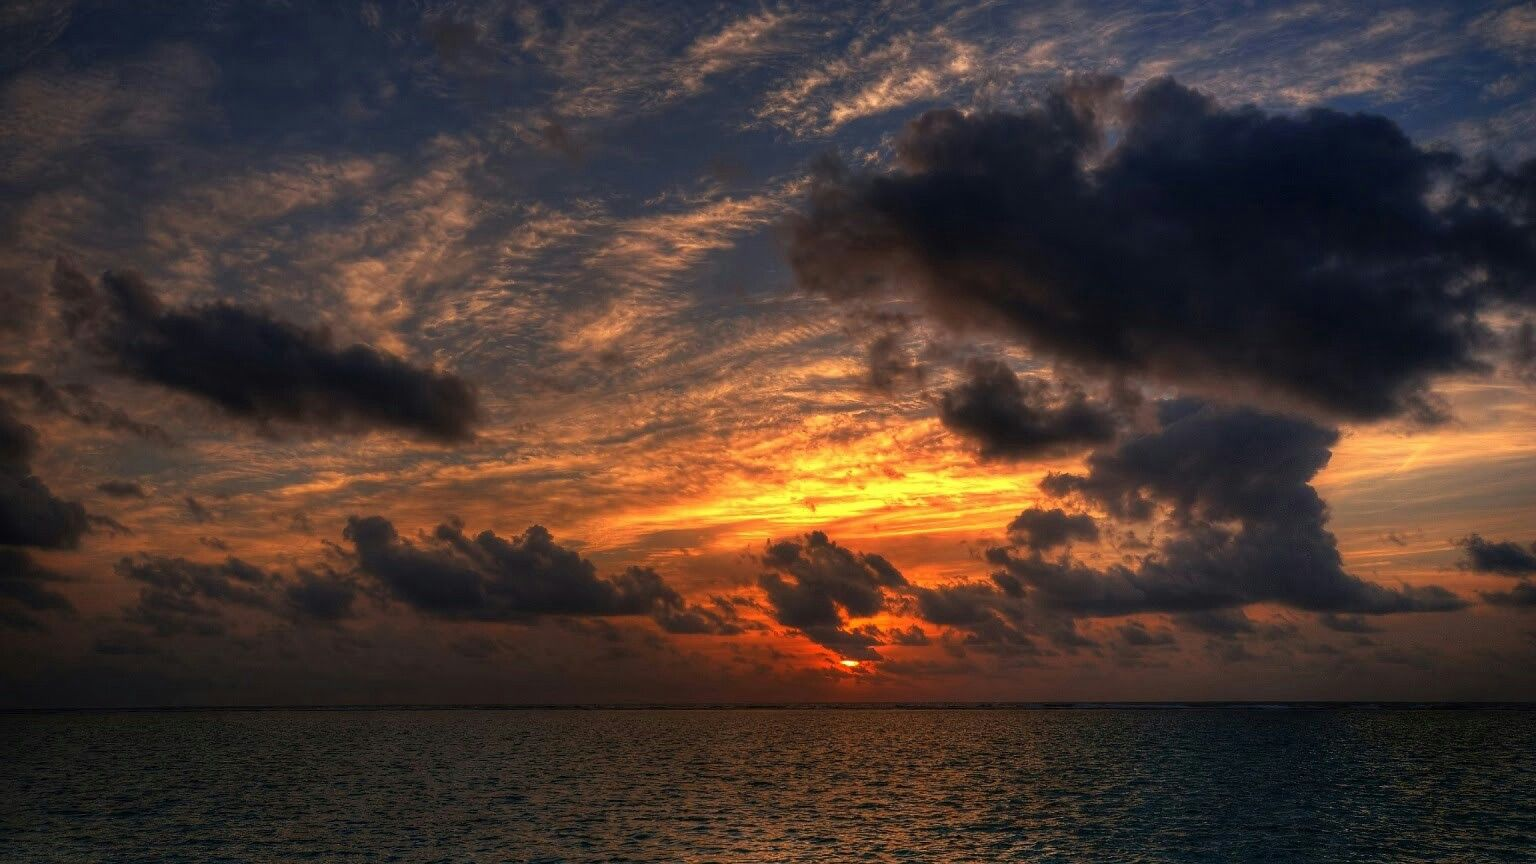 Pin By Godsin Abyss On Ocean Hd Nature Wallpapers Clouds Scenery Background